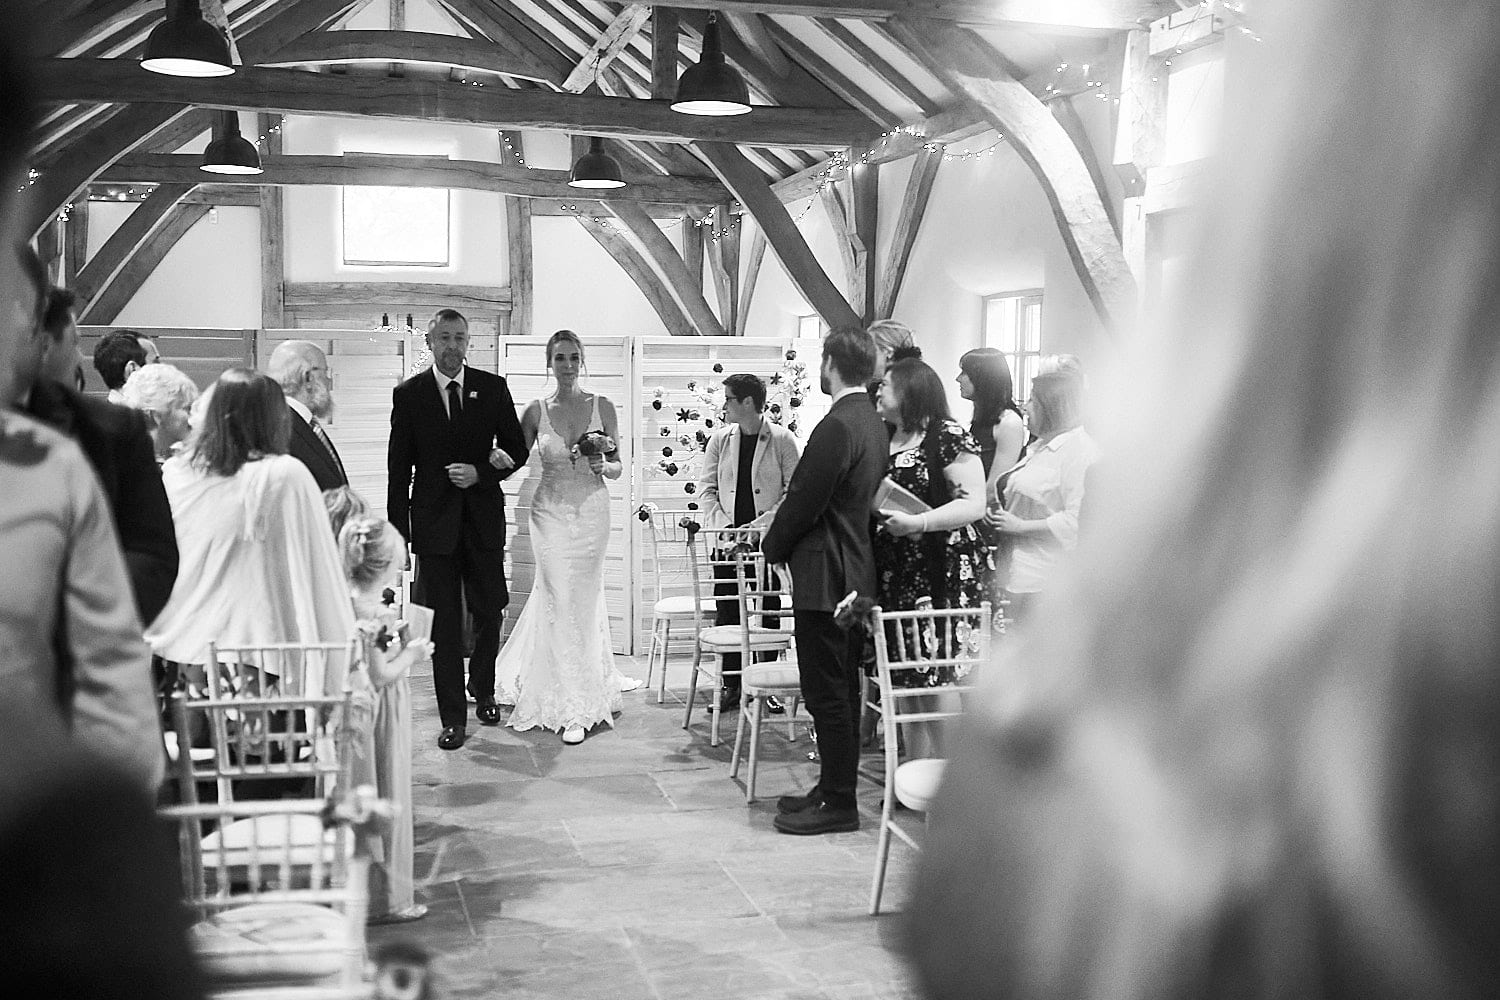 A father walks his daughter down the aisle at Abbey Farm, Woodhall Spa